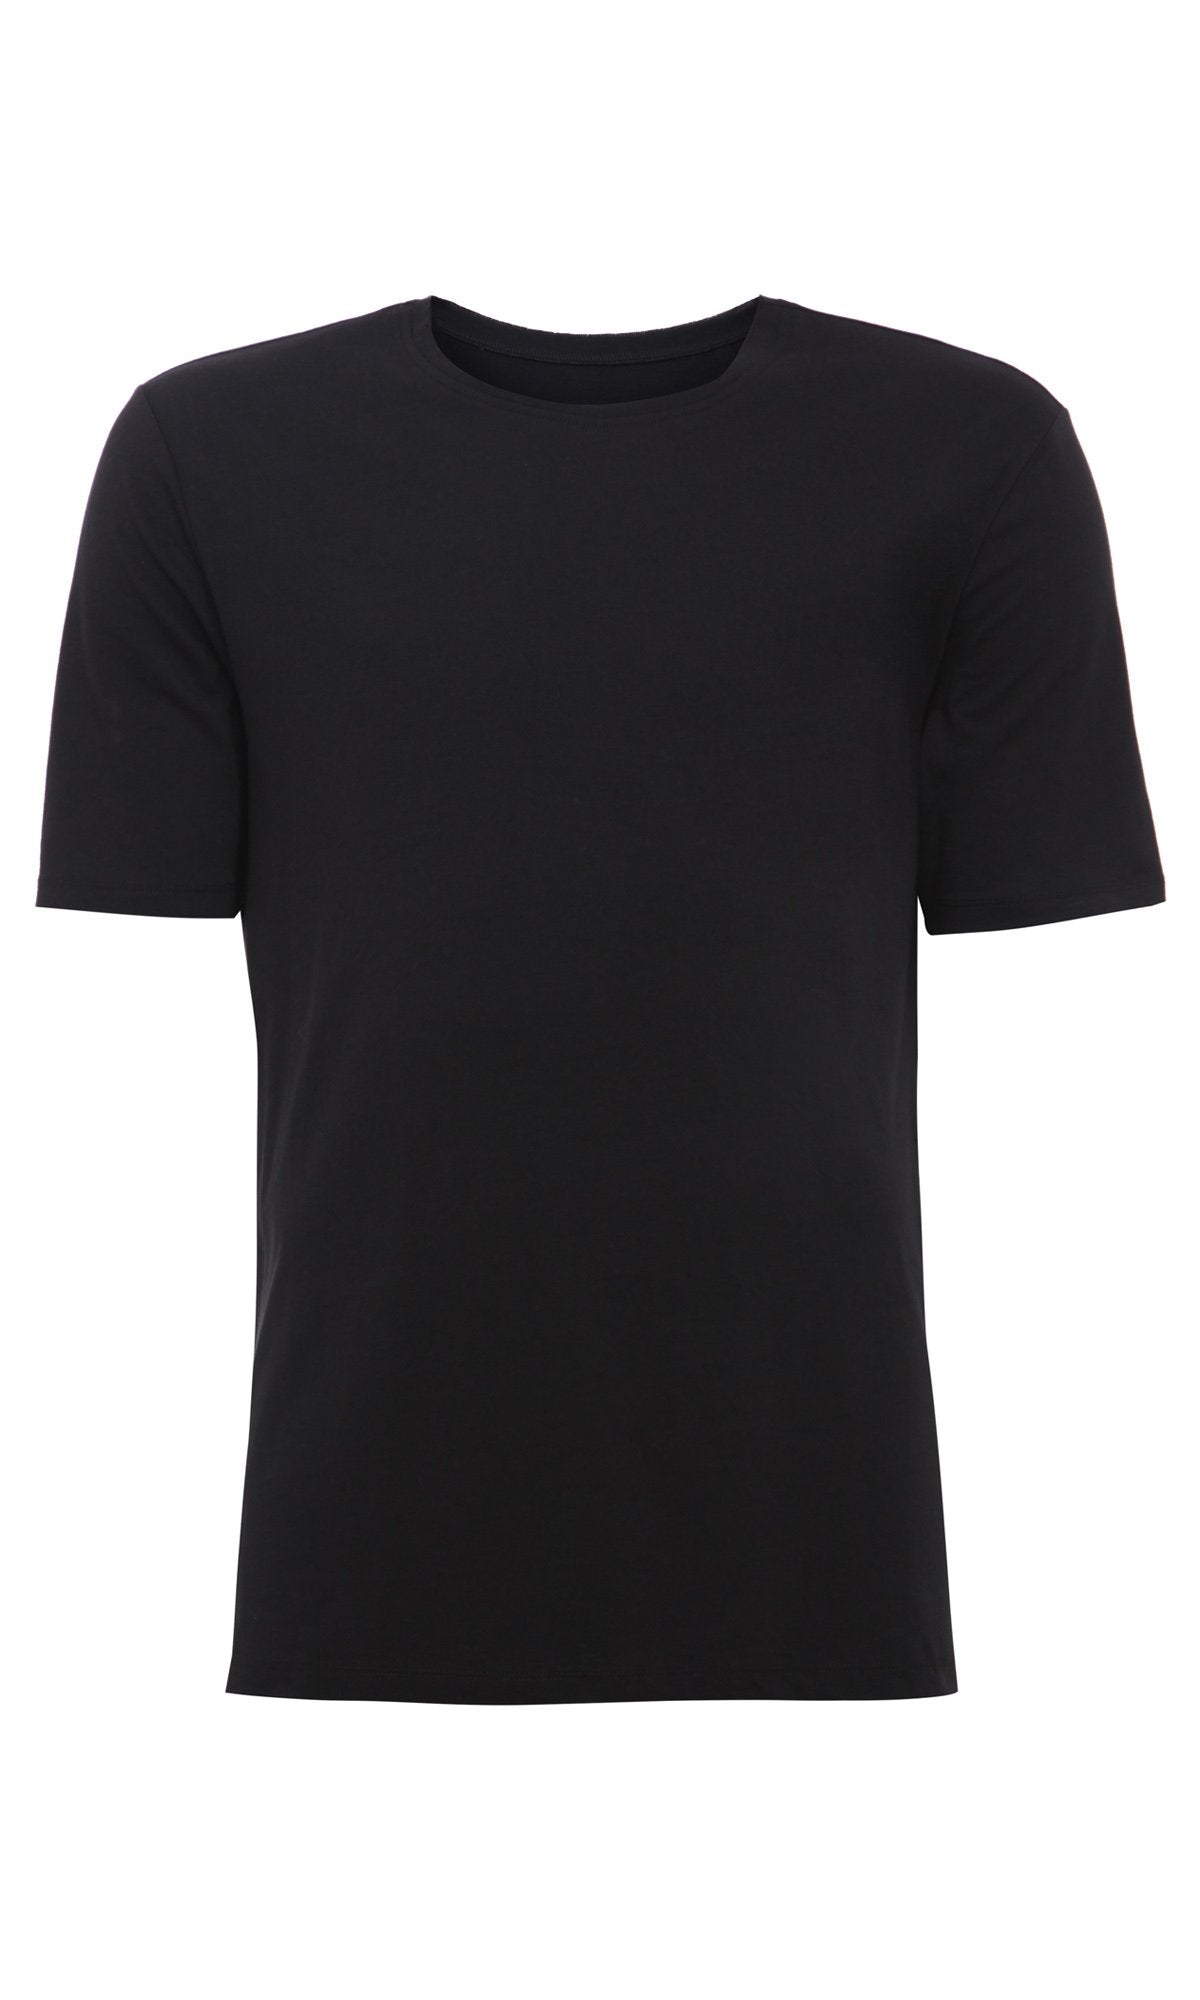 Mens Printed T Shirt 125 Black